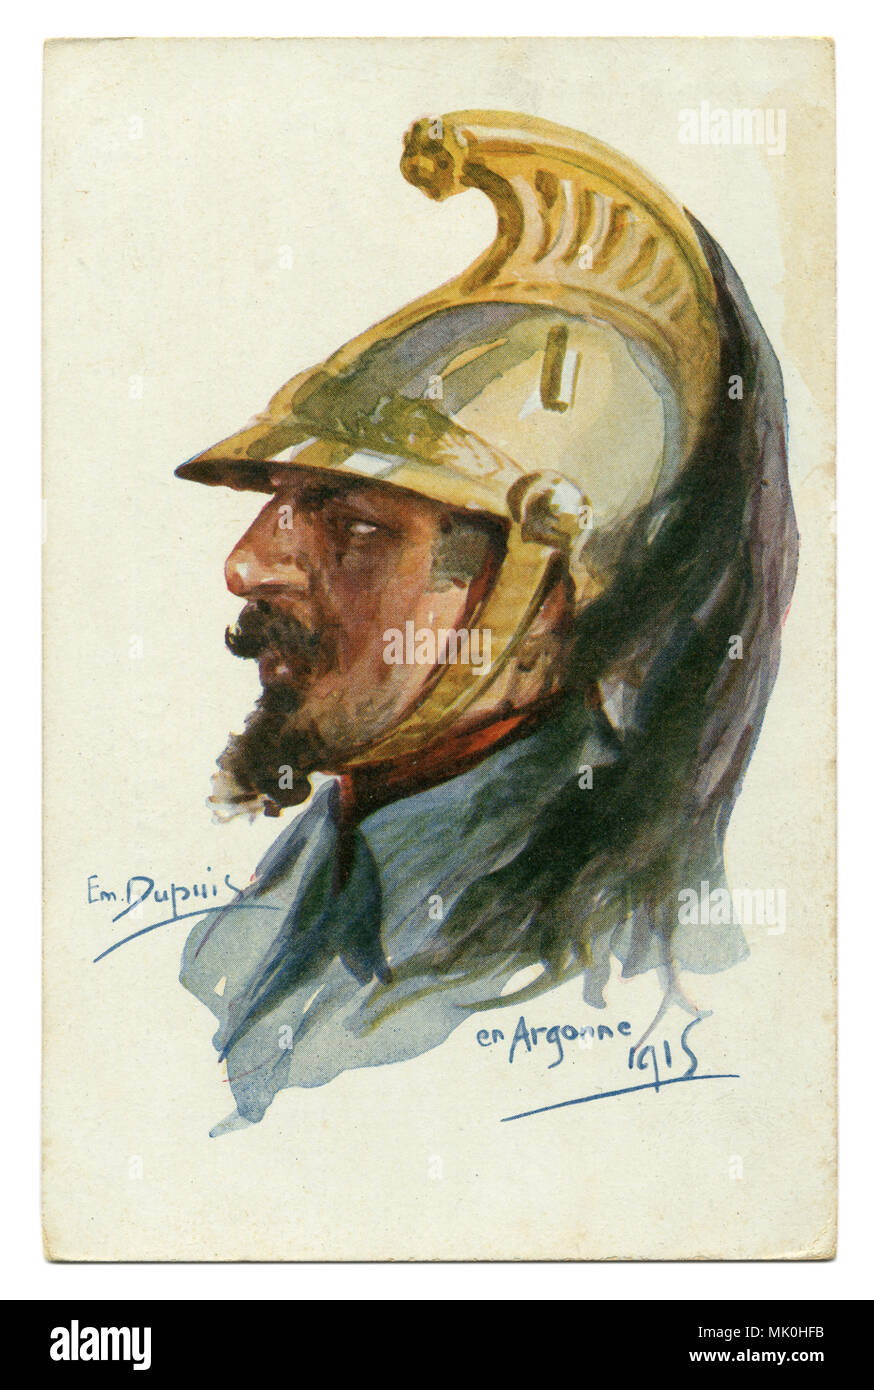 Old French postcard: brave Dragoon in a gold helmet with a plume. Argonne. The first world war of 1914-1918, France, Entente. WWi - Stock Image